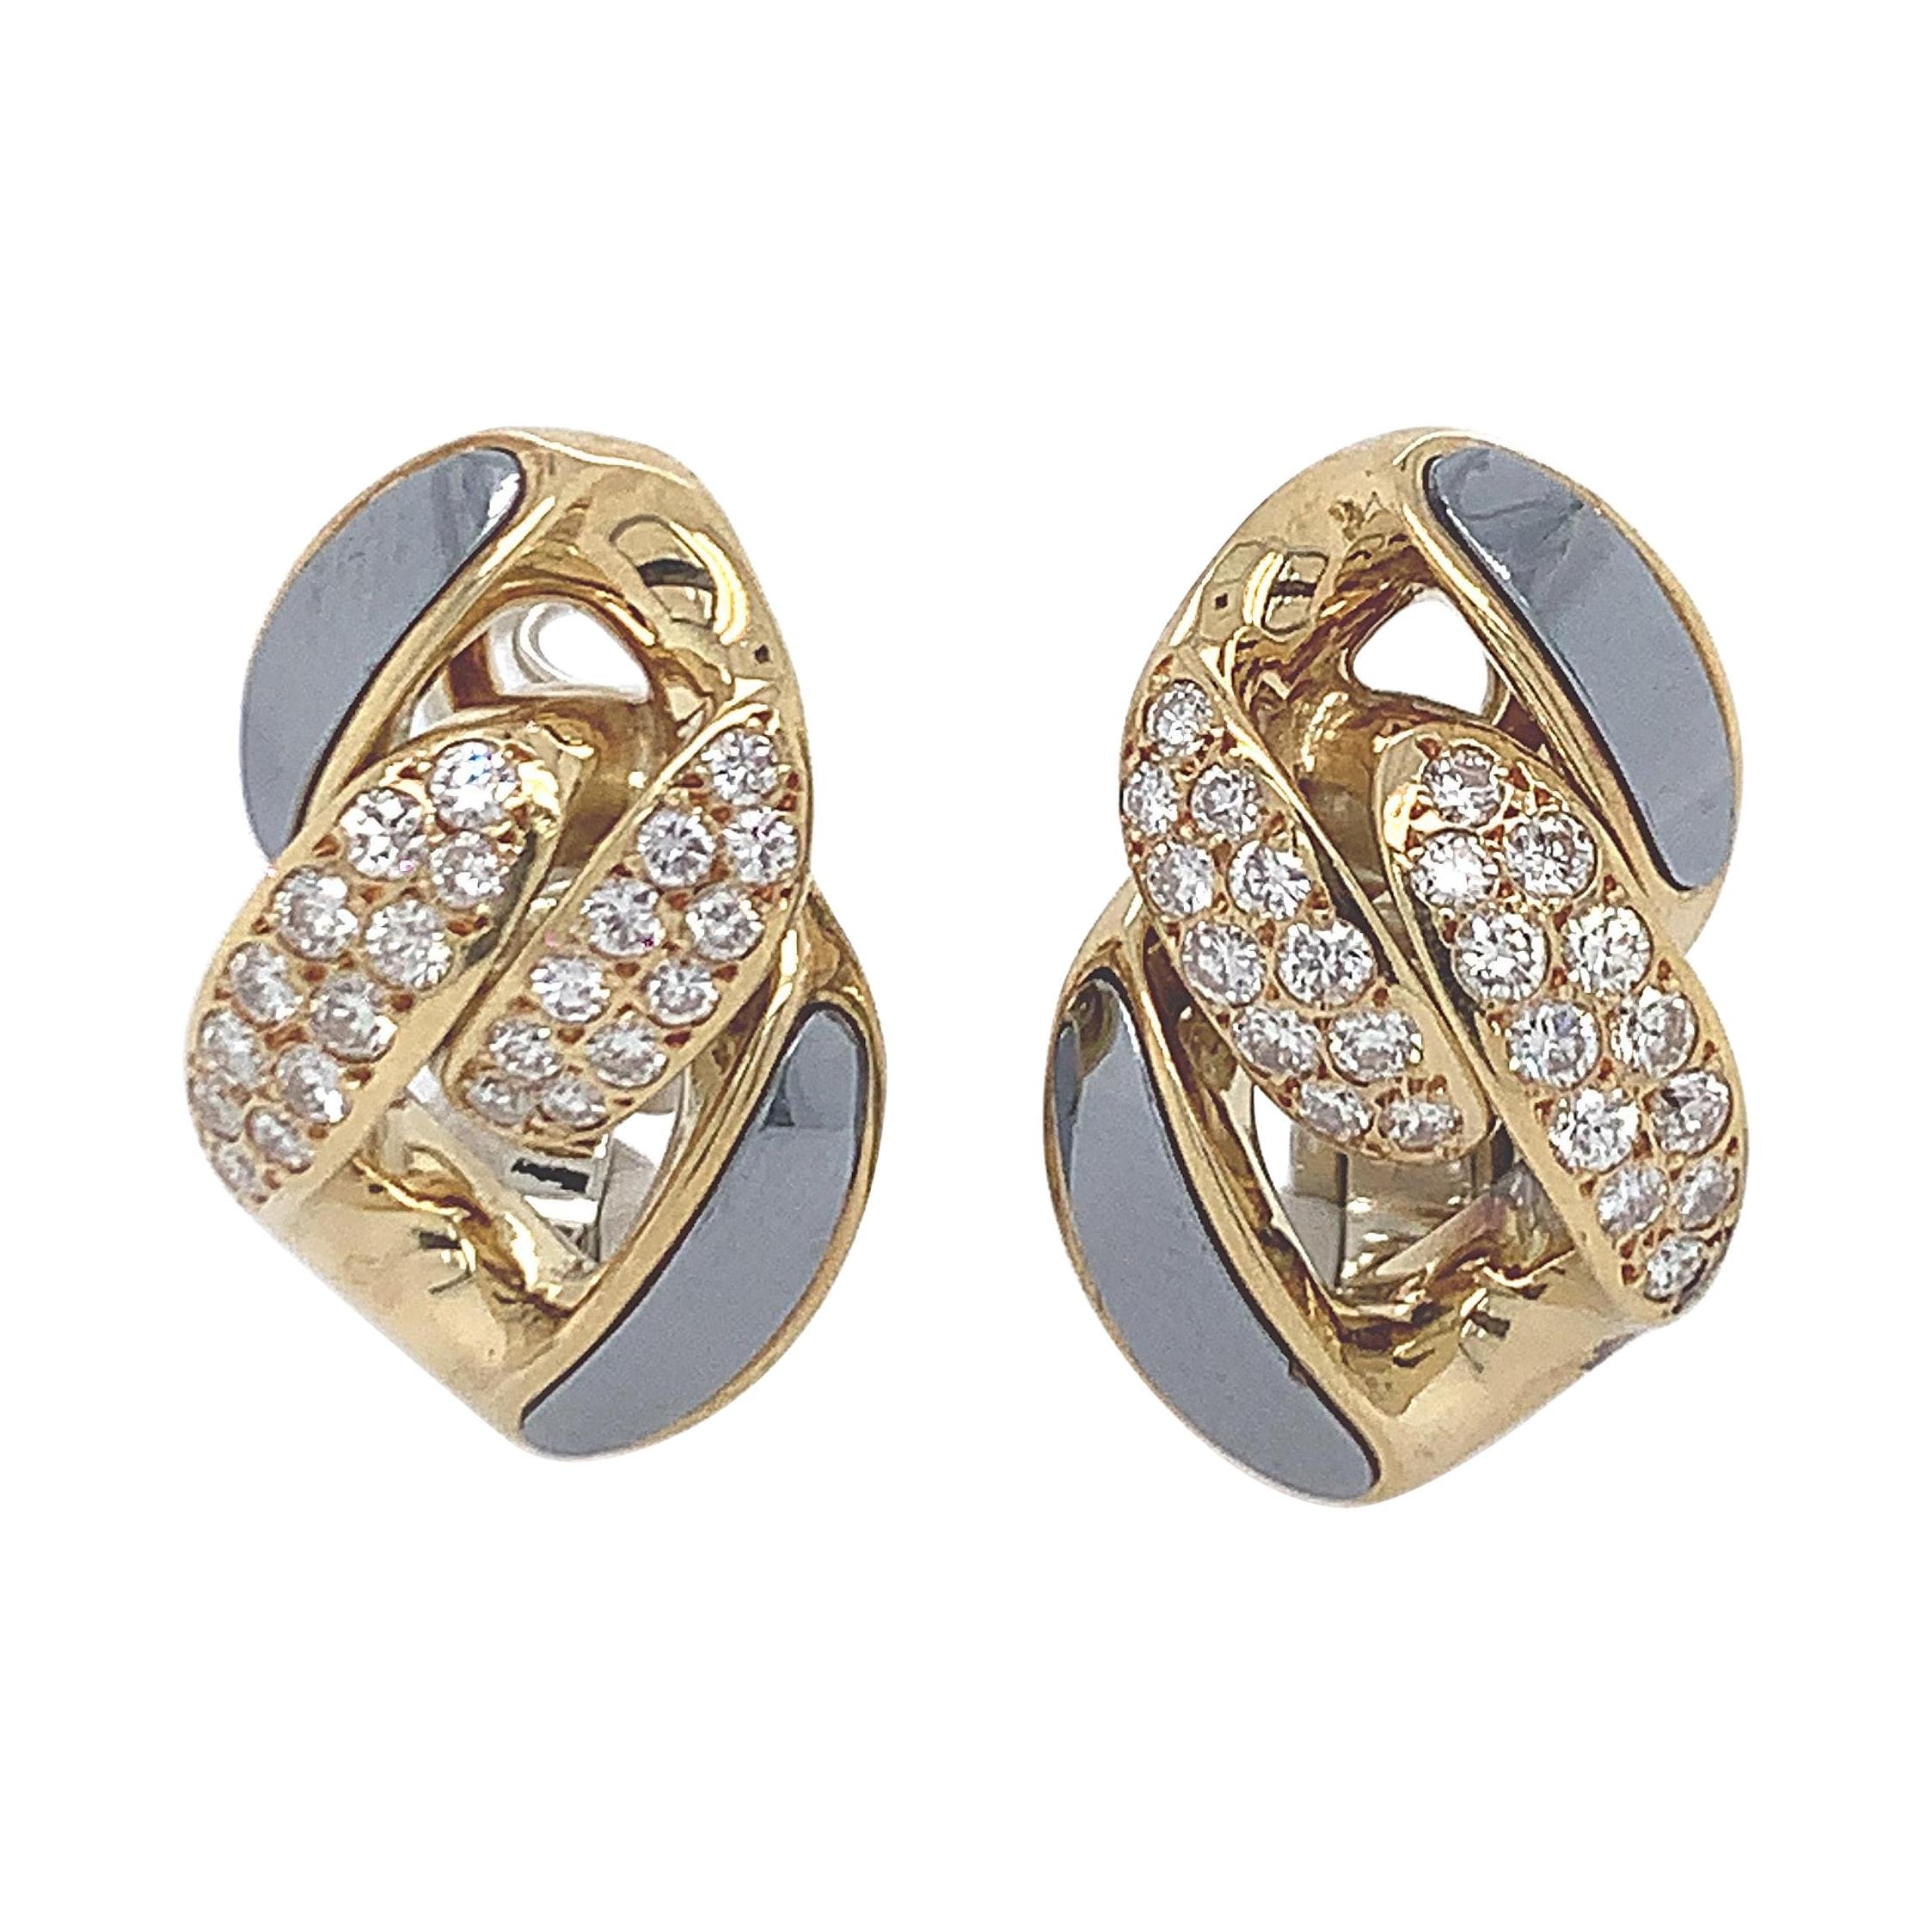 Bulgari Diamond Hematite Earclips